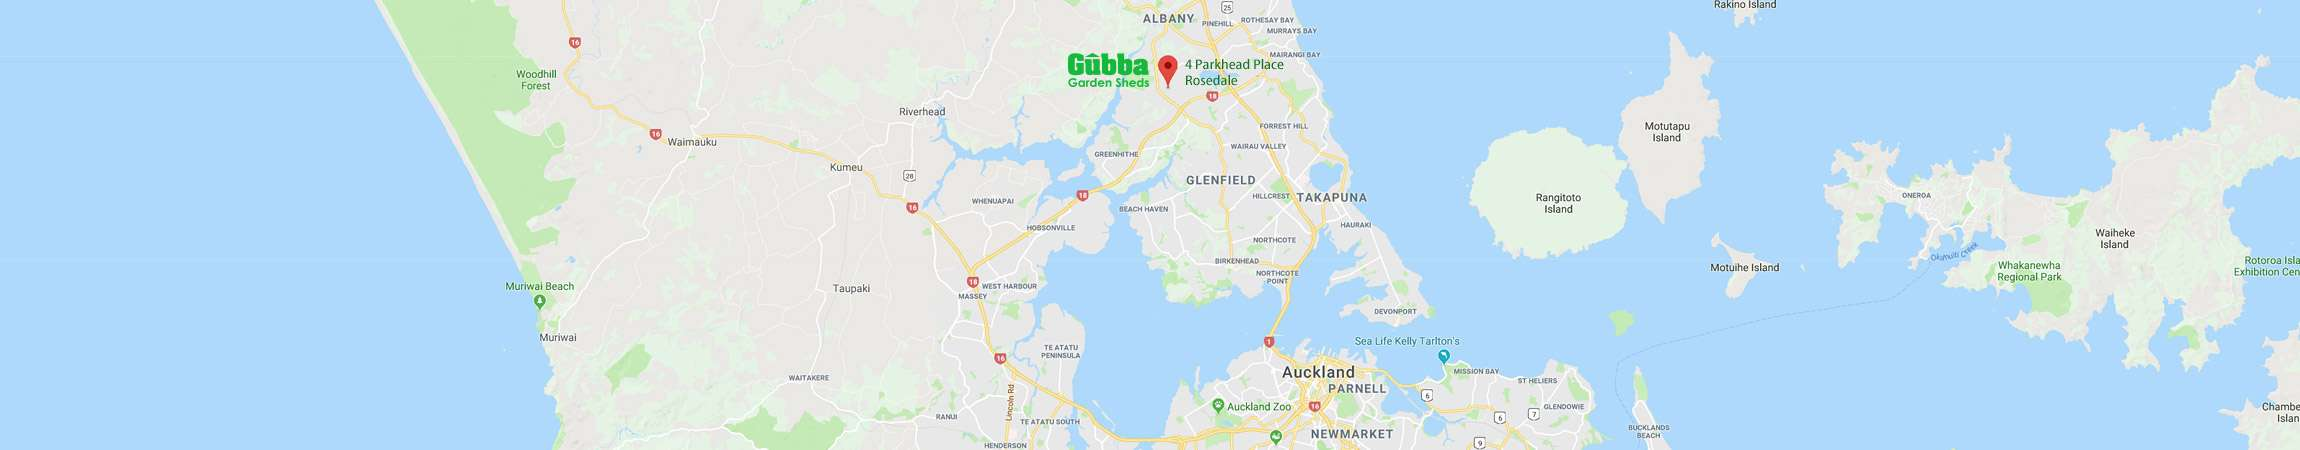 Gubba Garden Sheds Location